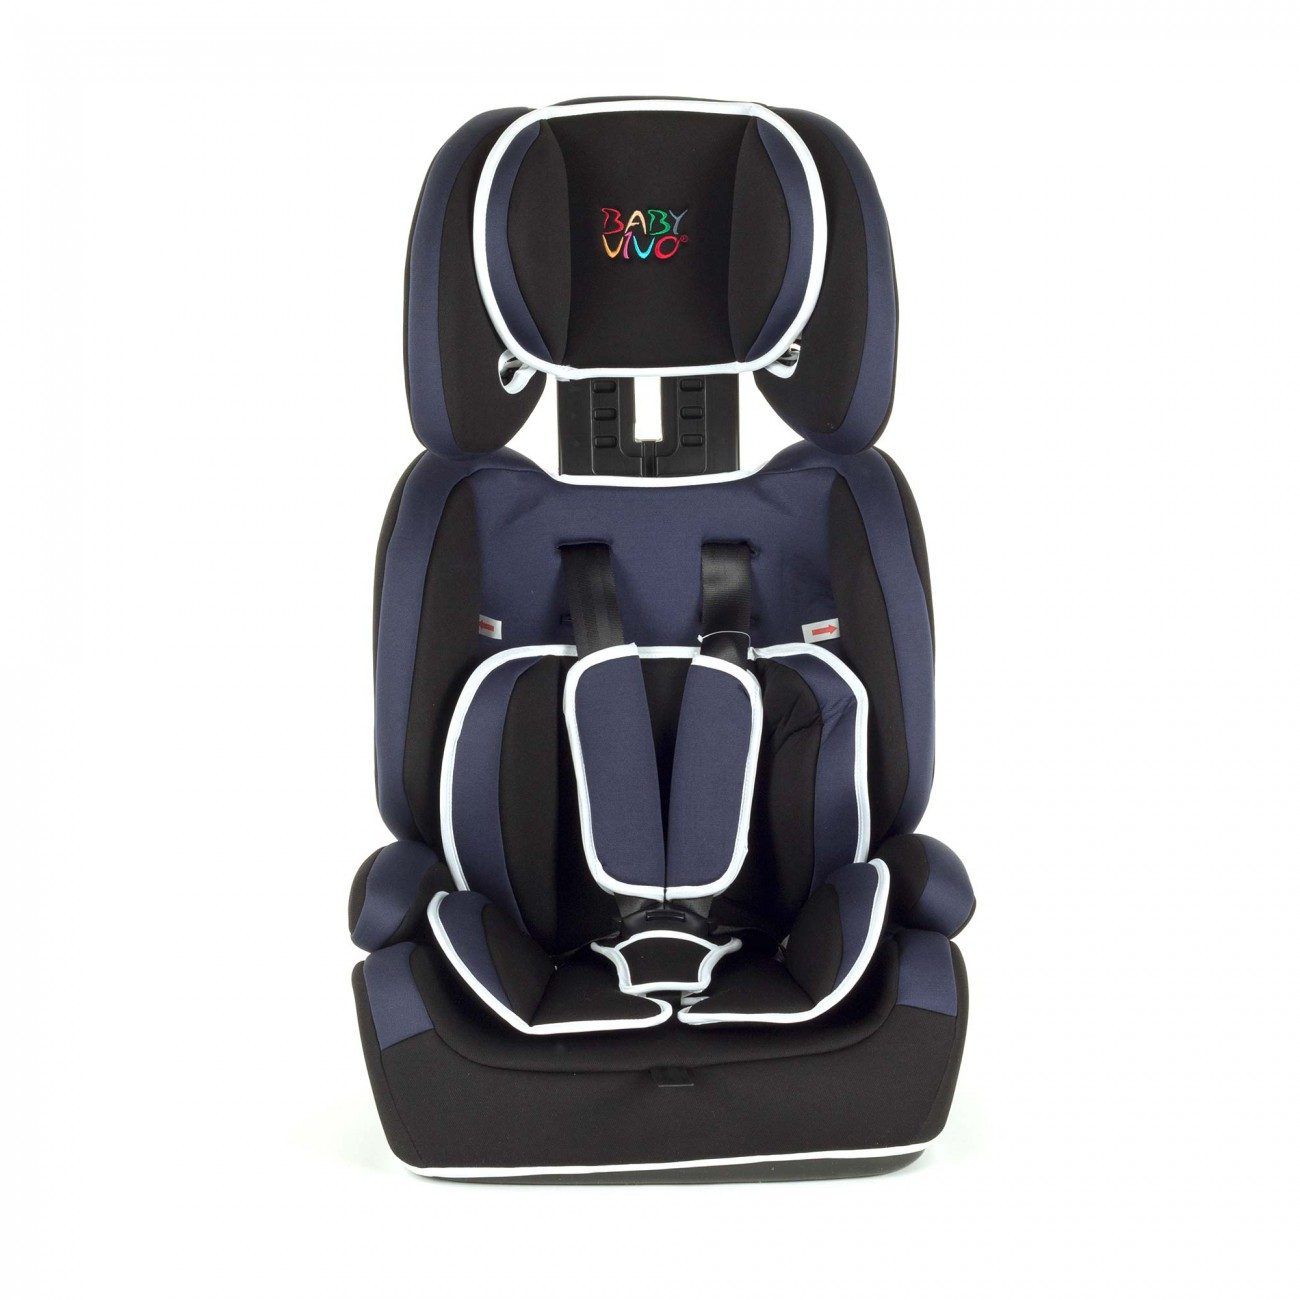 kindersitz 9 36 kg autokindersitz autositz gruppe 1 2 3 blau schwarz baby vivo ebay. Black Bedroom Furniture Sets. Home Design Ideas